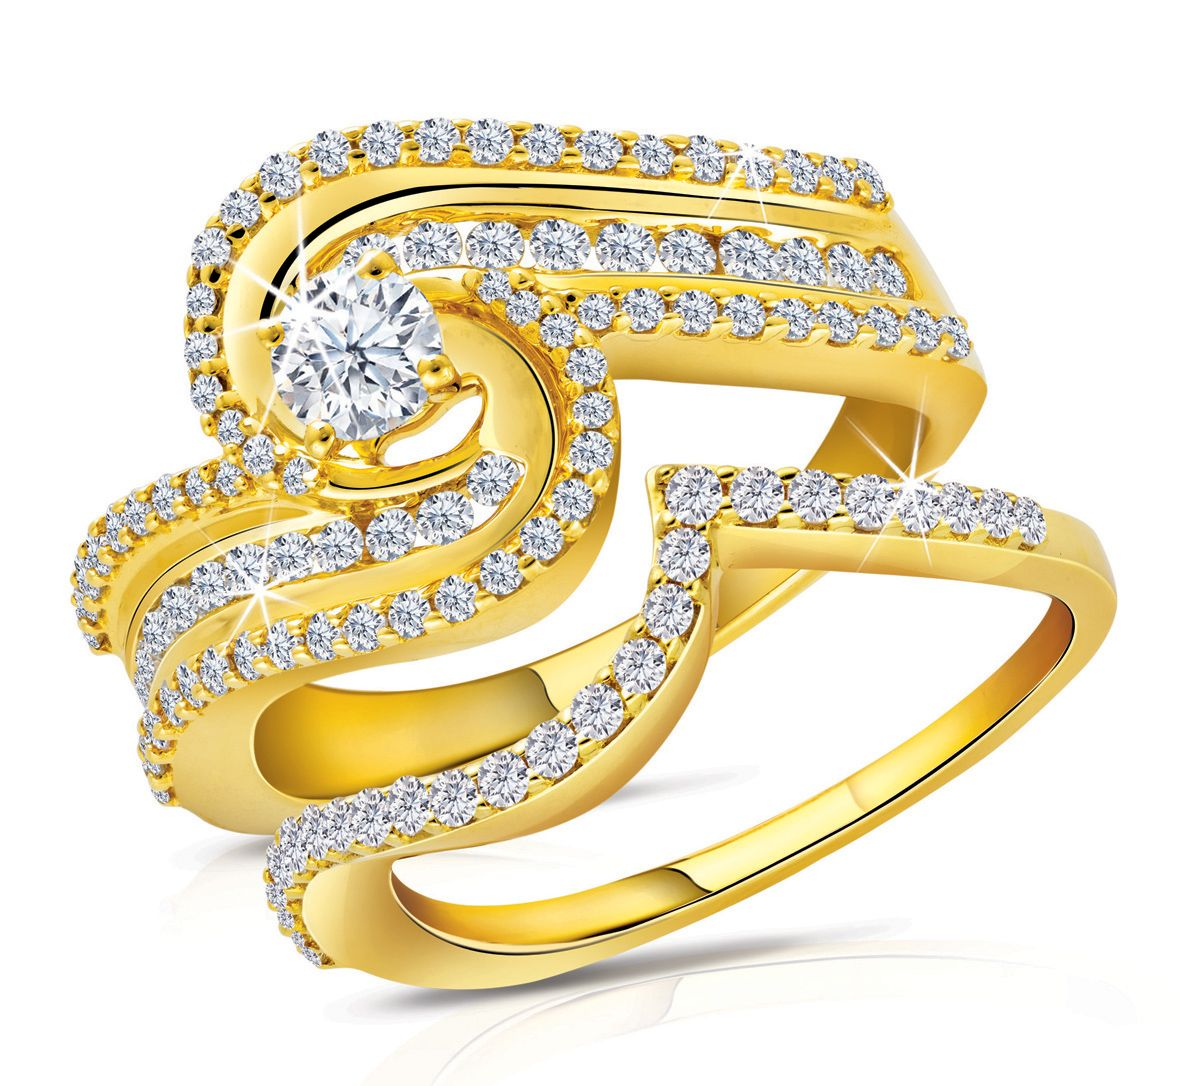 Fashion, Girls Fashion, Girls Dressing, Beauty, Beauty tips, Dressing, Bridal dress, Groom dress, wedding decoration, party decoration, Hair style, Nail Art, Make Up, Shoes.   http://islamic-quotes11.blogspot.com/ https://www.youtube.com/watch?v=eNxiCKvfk6Y